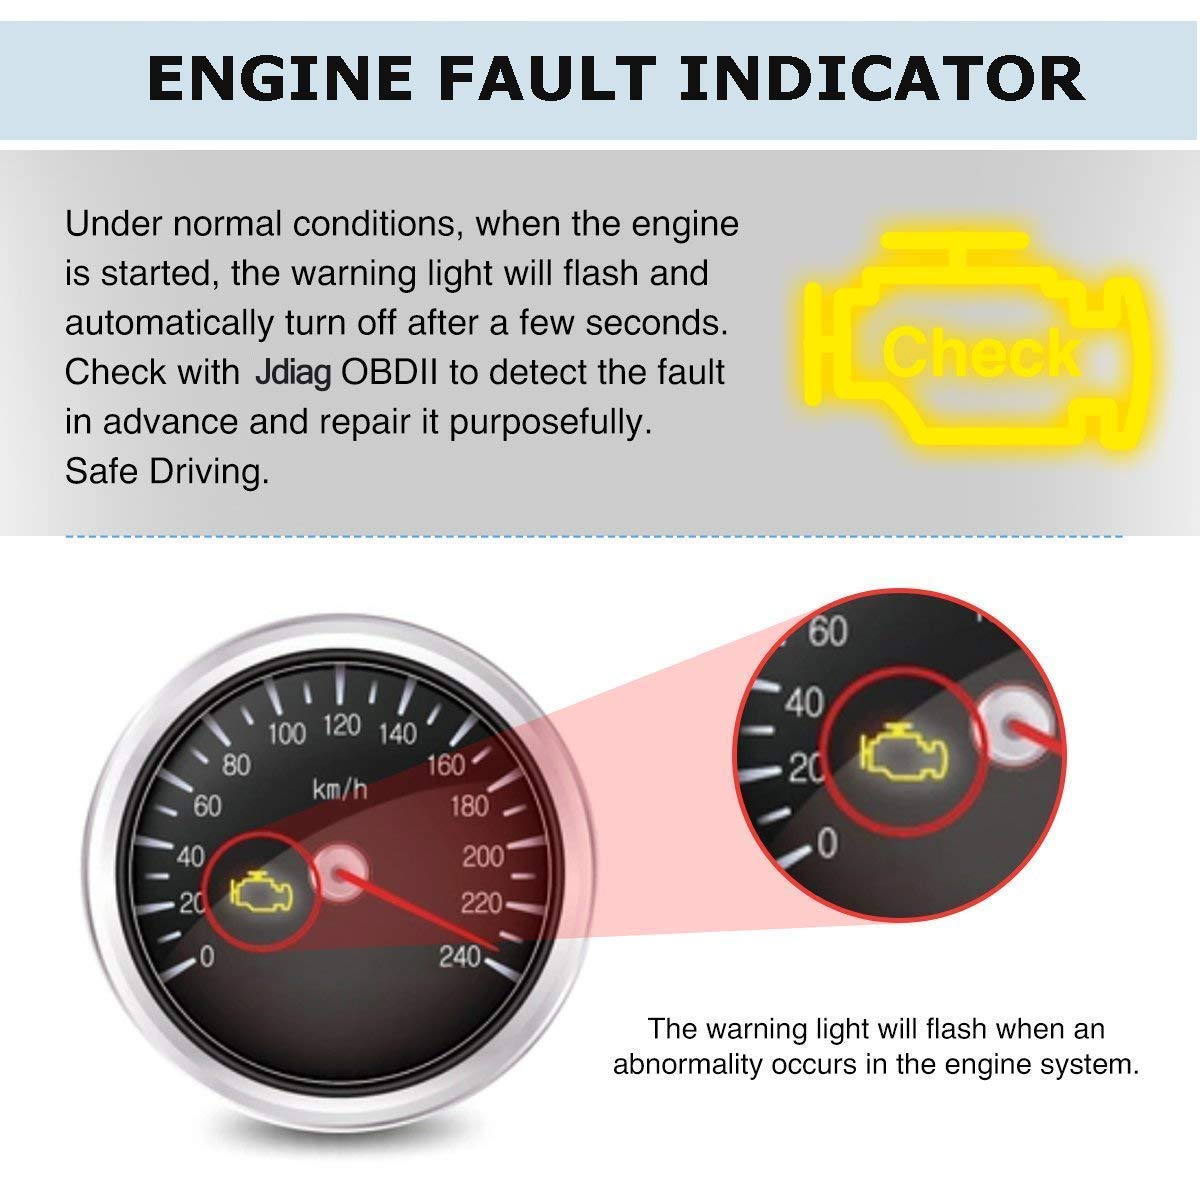 JDiag OBD2 Scanner Auto Check Car Engine Fault Code Reader Enhanced Universal OBD II Classic Diagnostic Scan Tool Suitable for EOBD/CAN Vehicles by JDIAG (Image #2)